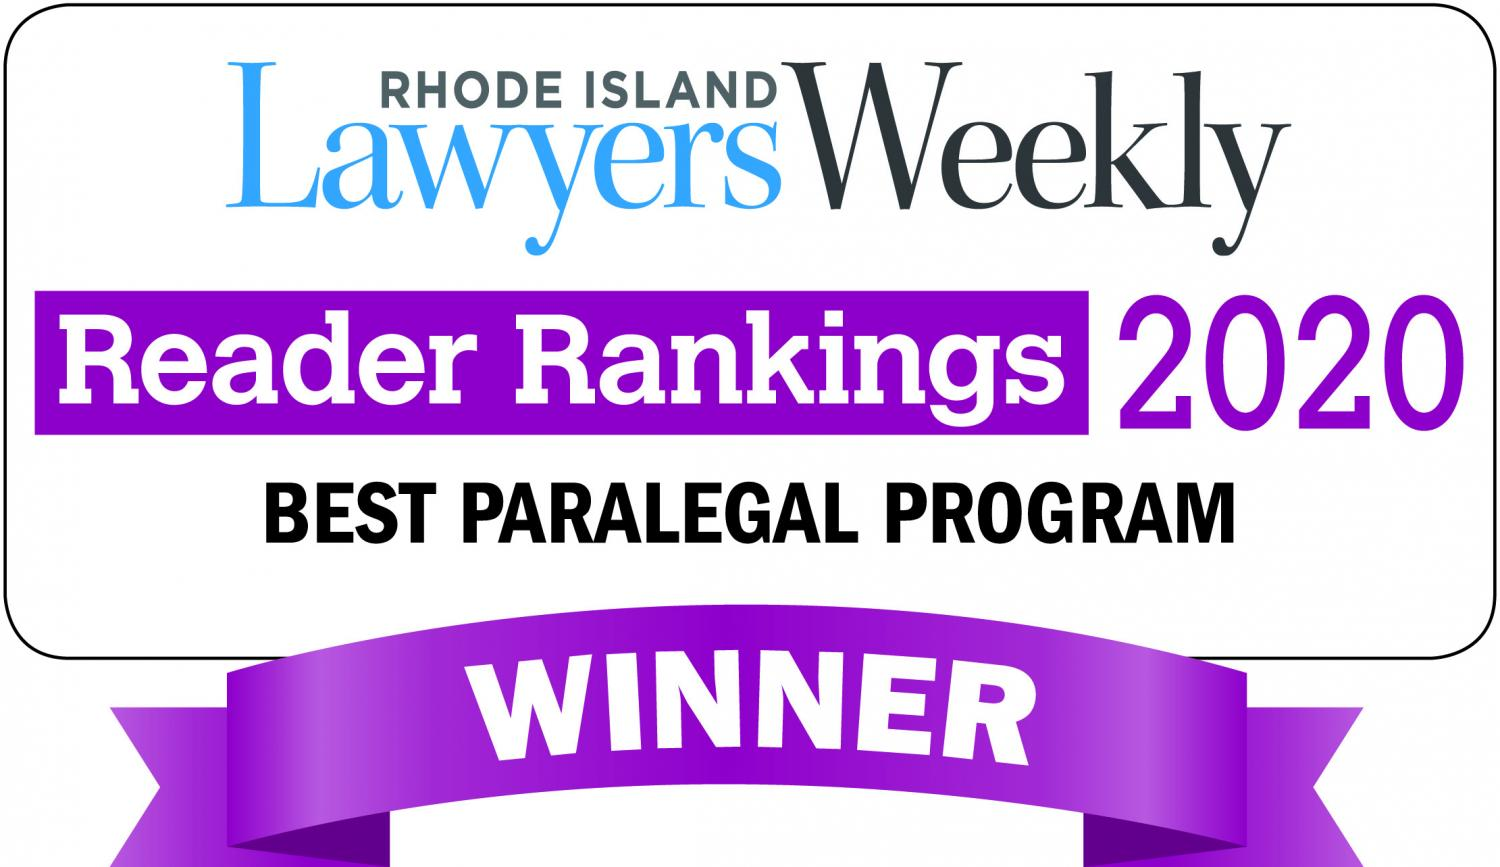 Voted Best Paralegal Program by Lawyer's Weekly